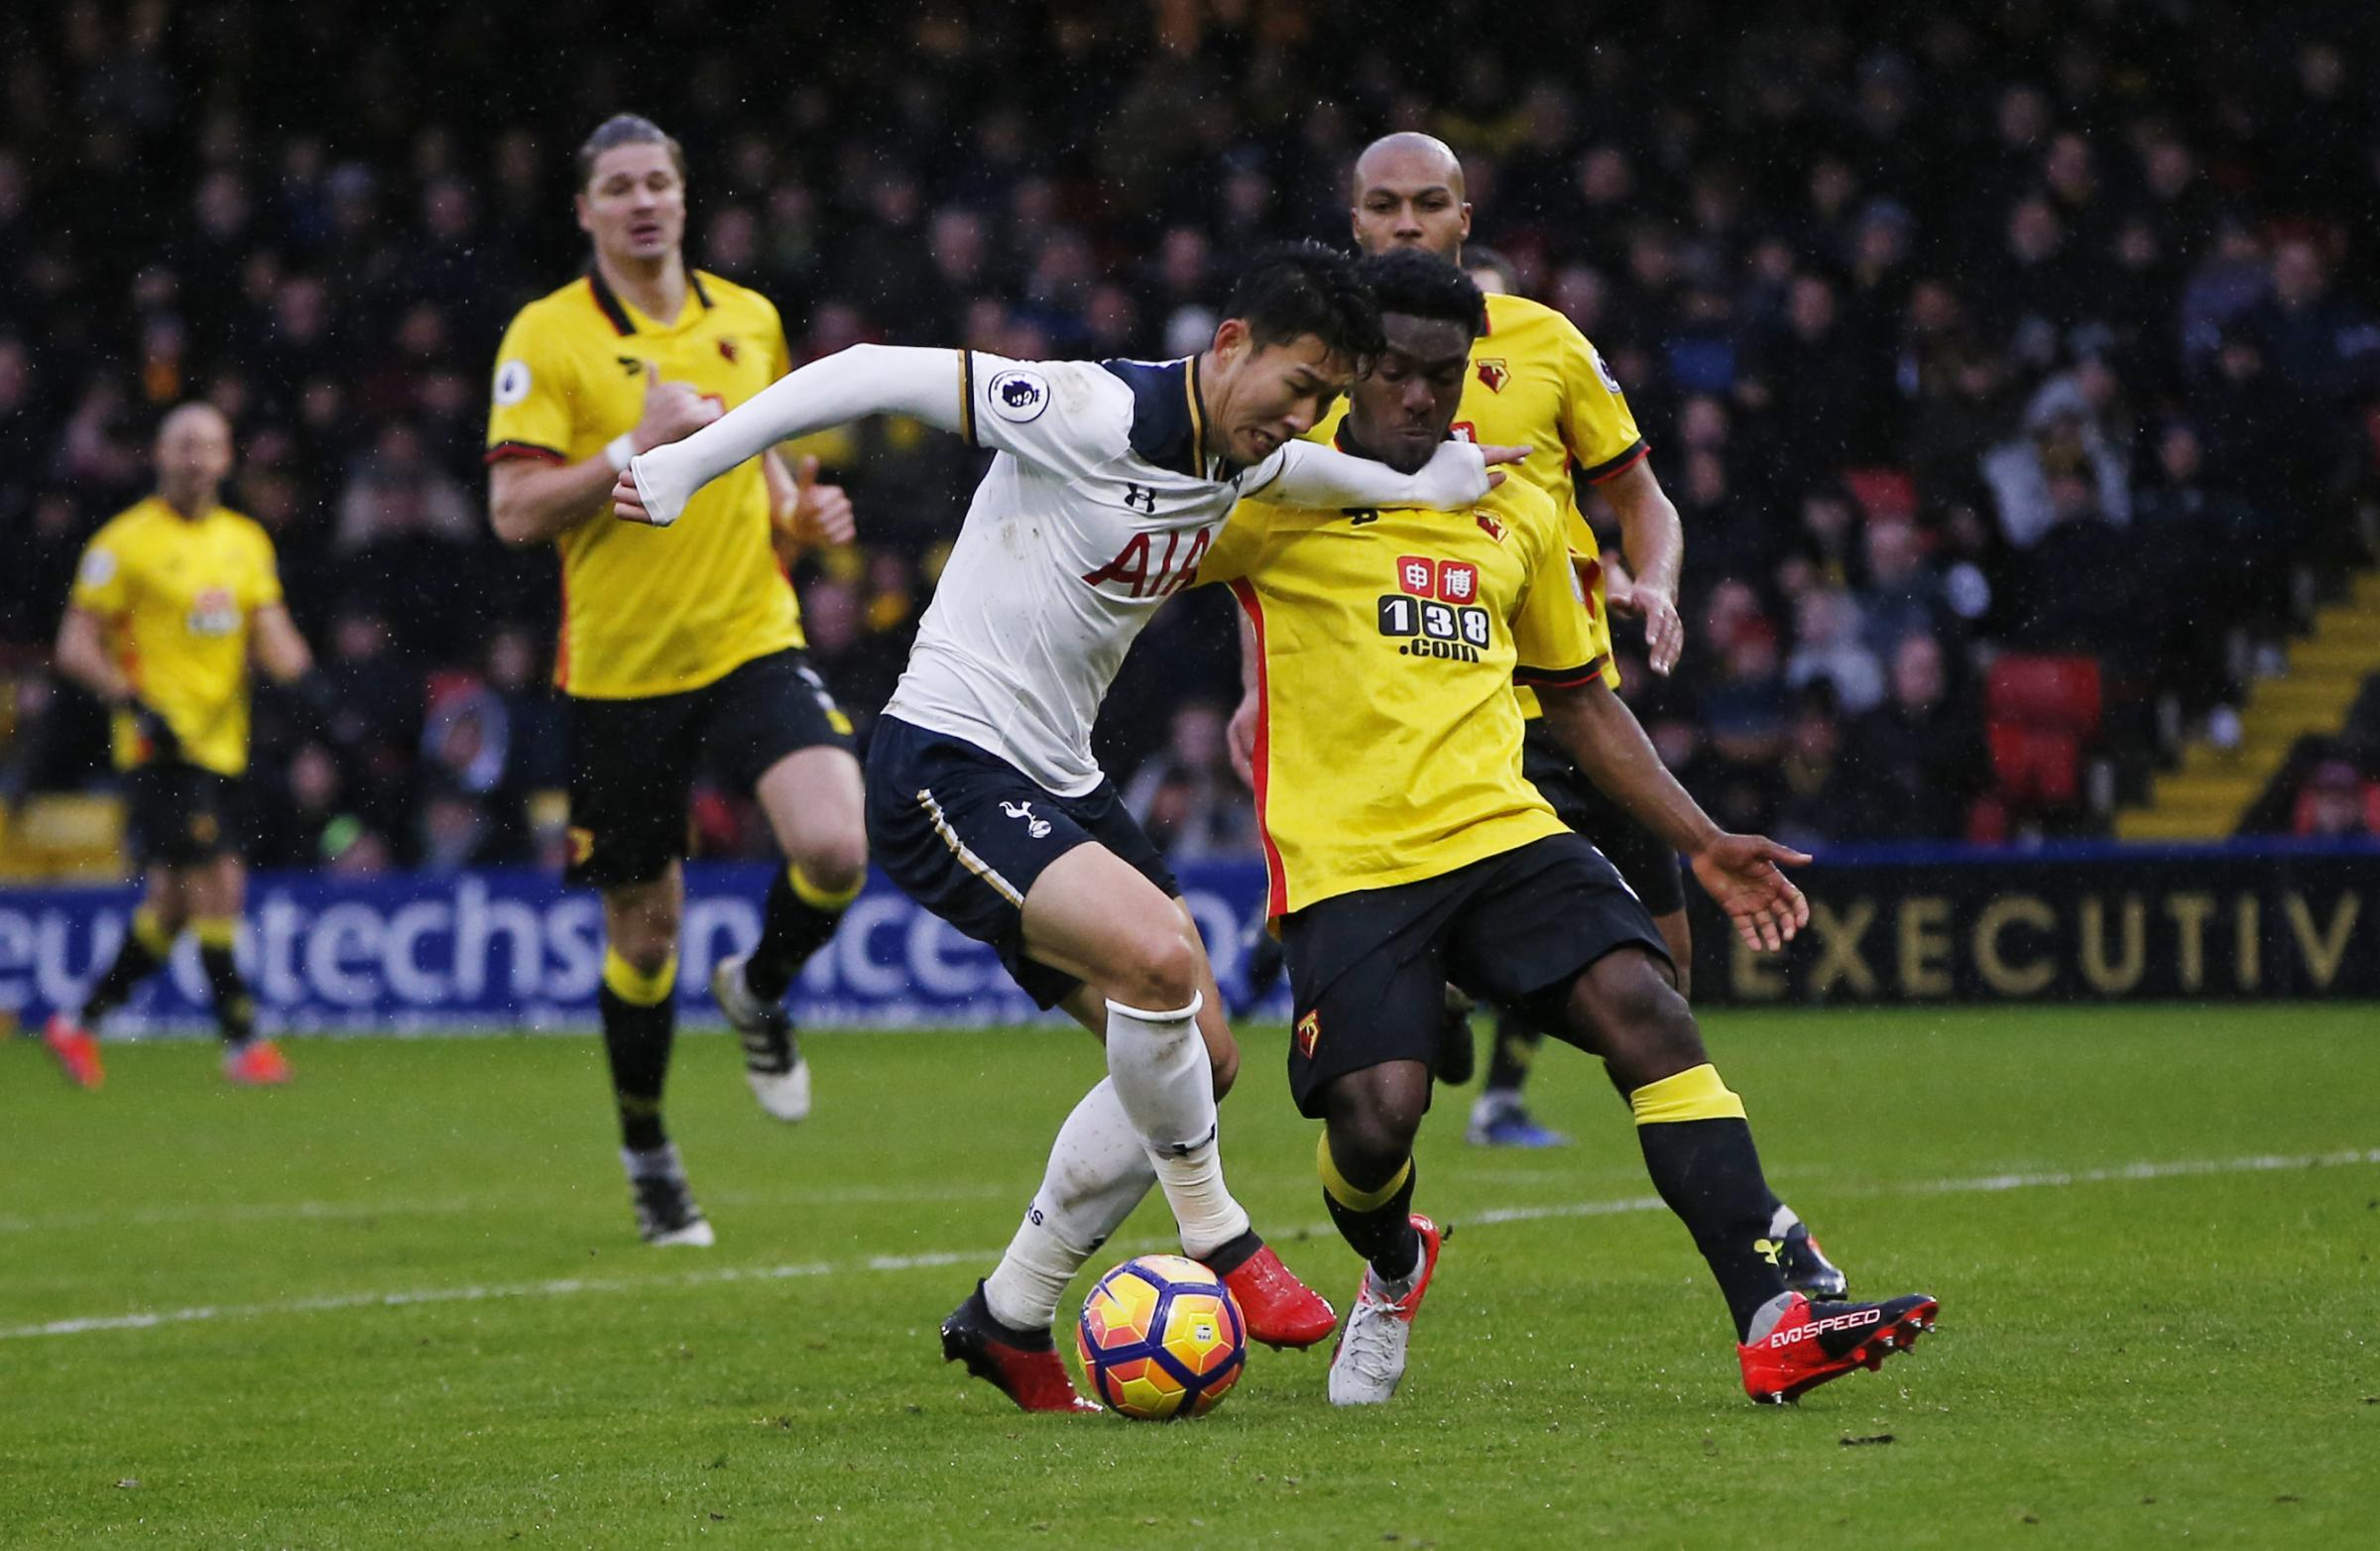 Brandon Mason made four first-team outings last season, but hasn't featured for Watford this term. Picture: Action Images